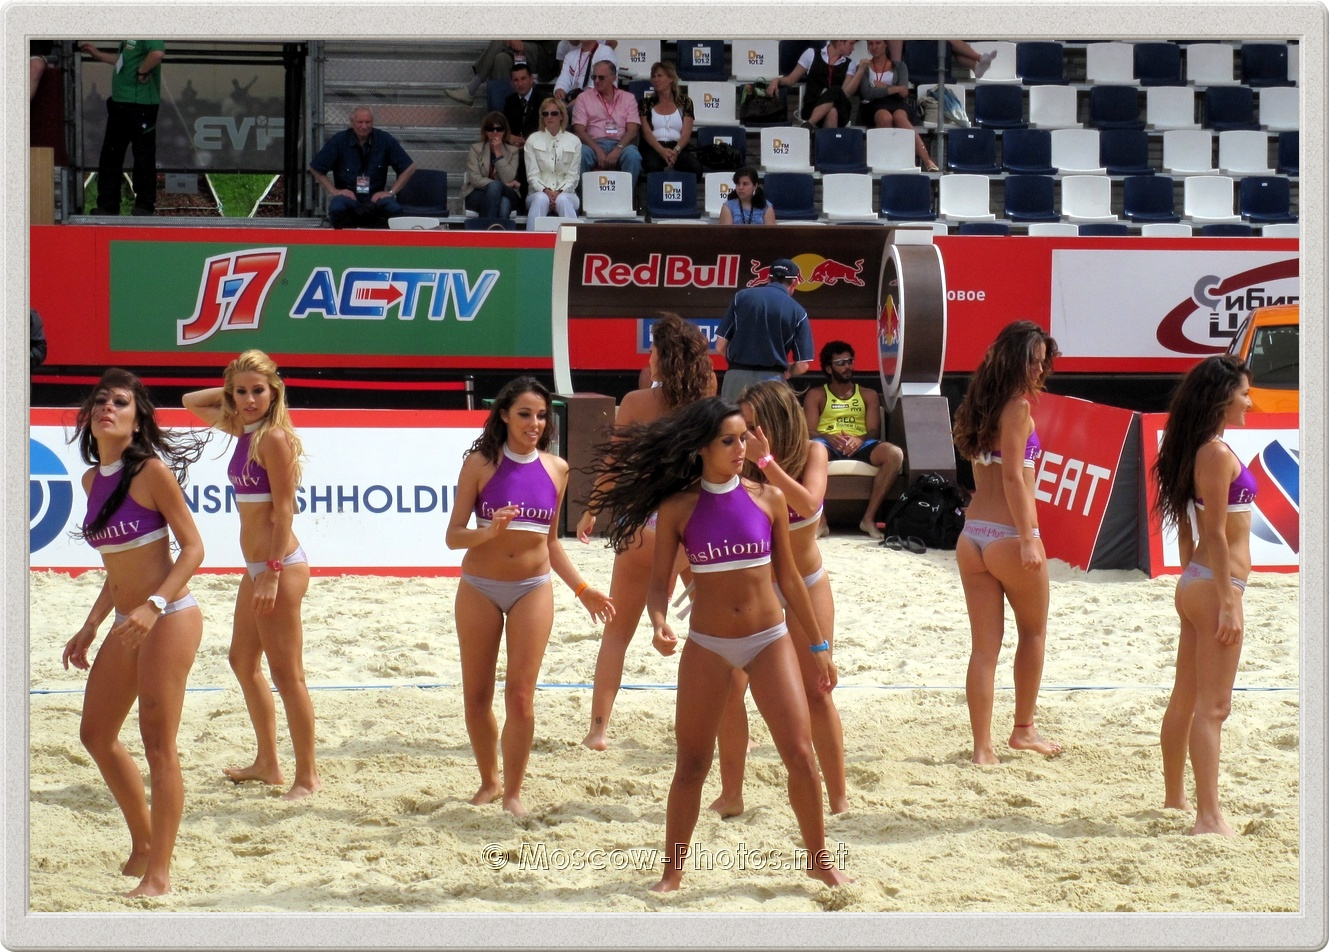 Hot Beach Volleyball Girls In Moscow